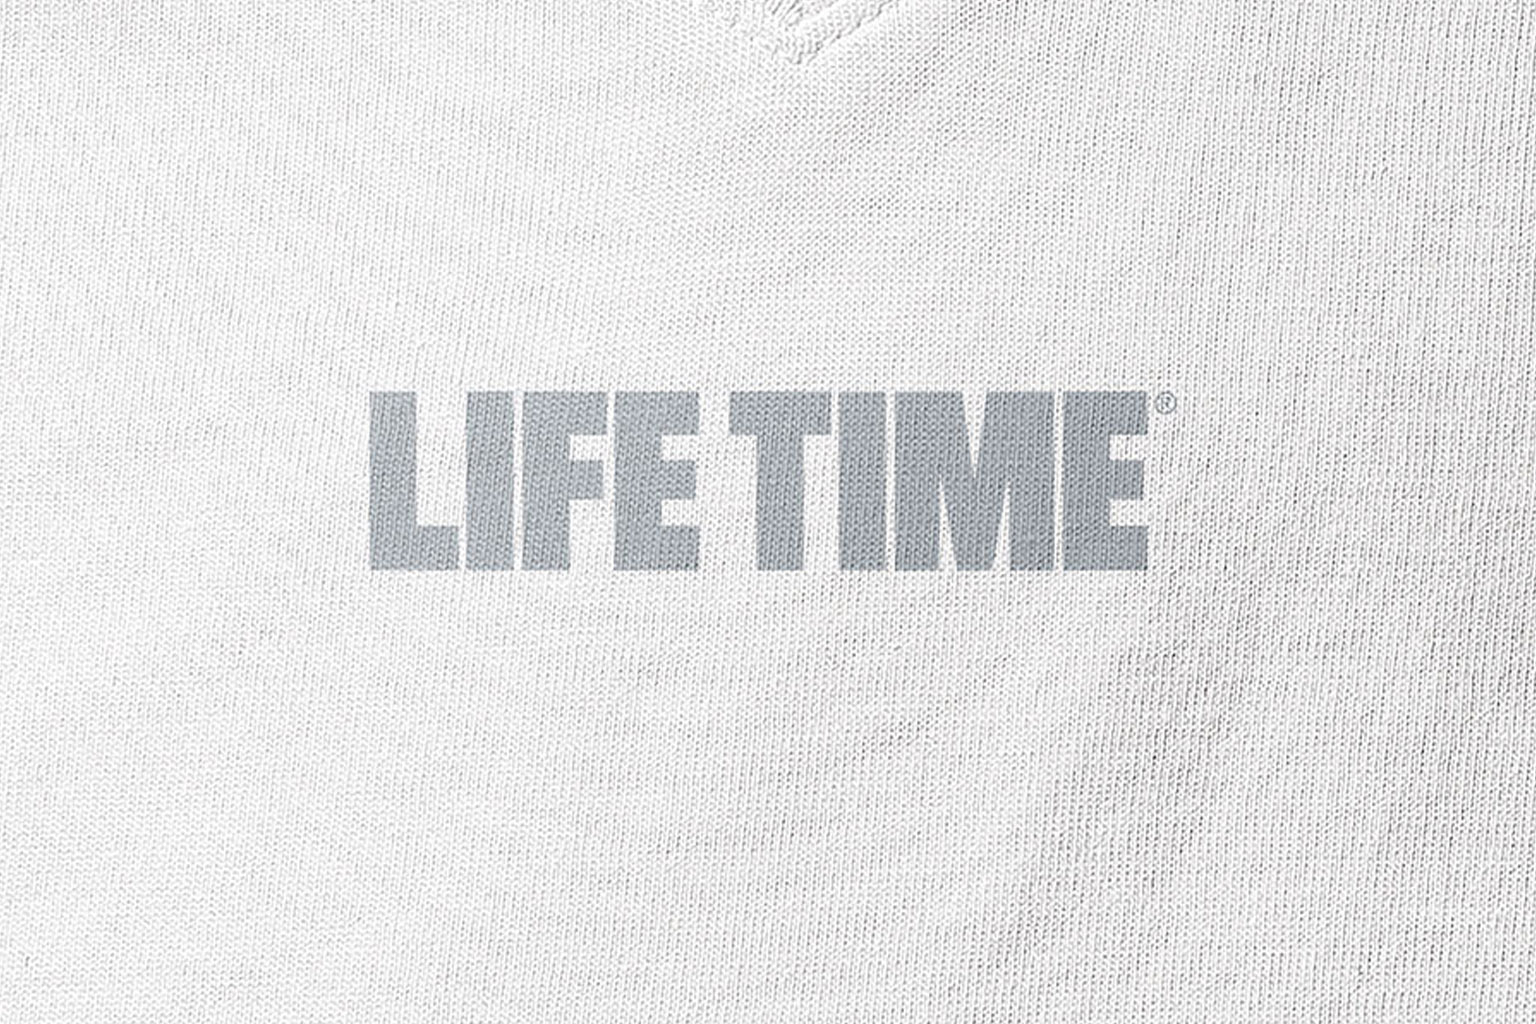 Silver Life Time master logo on a white fabric background